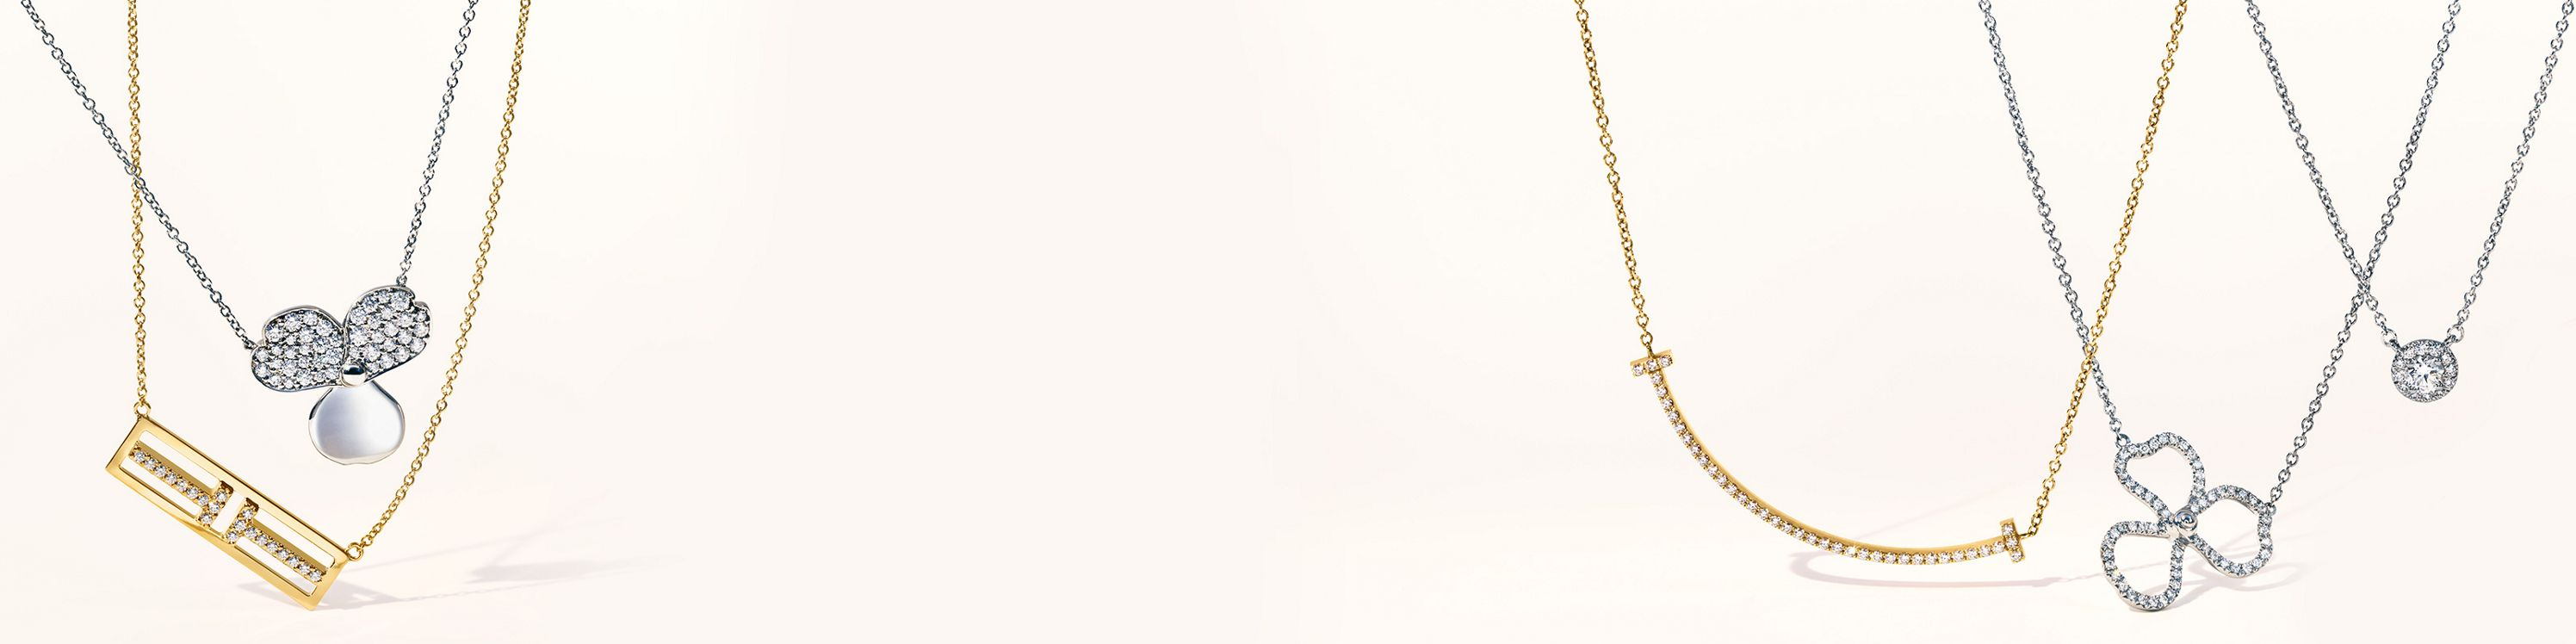 4dac65544 Necklaces & Pendants | Tiffany & Co.